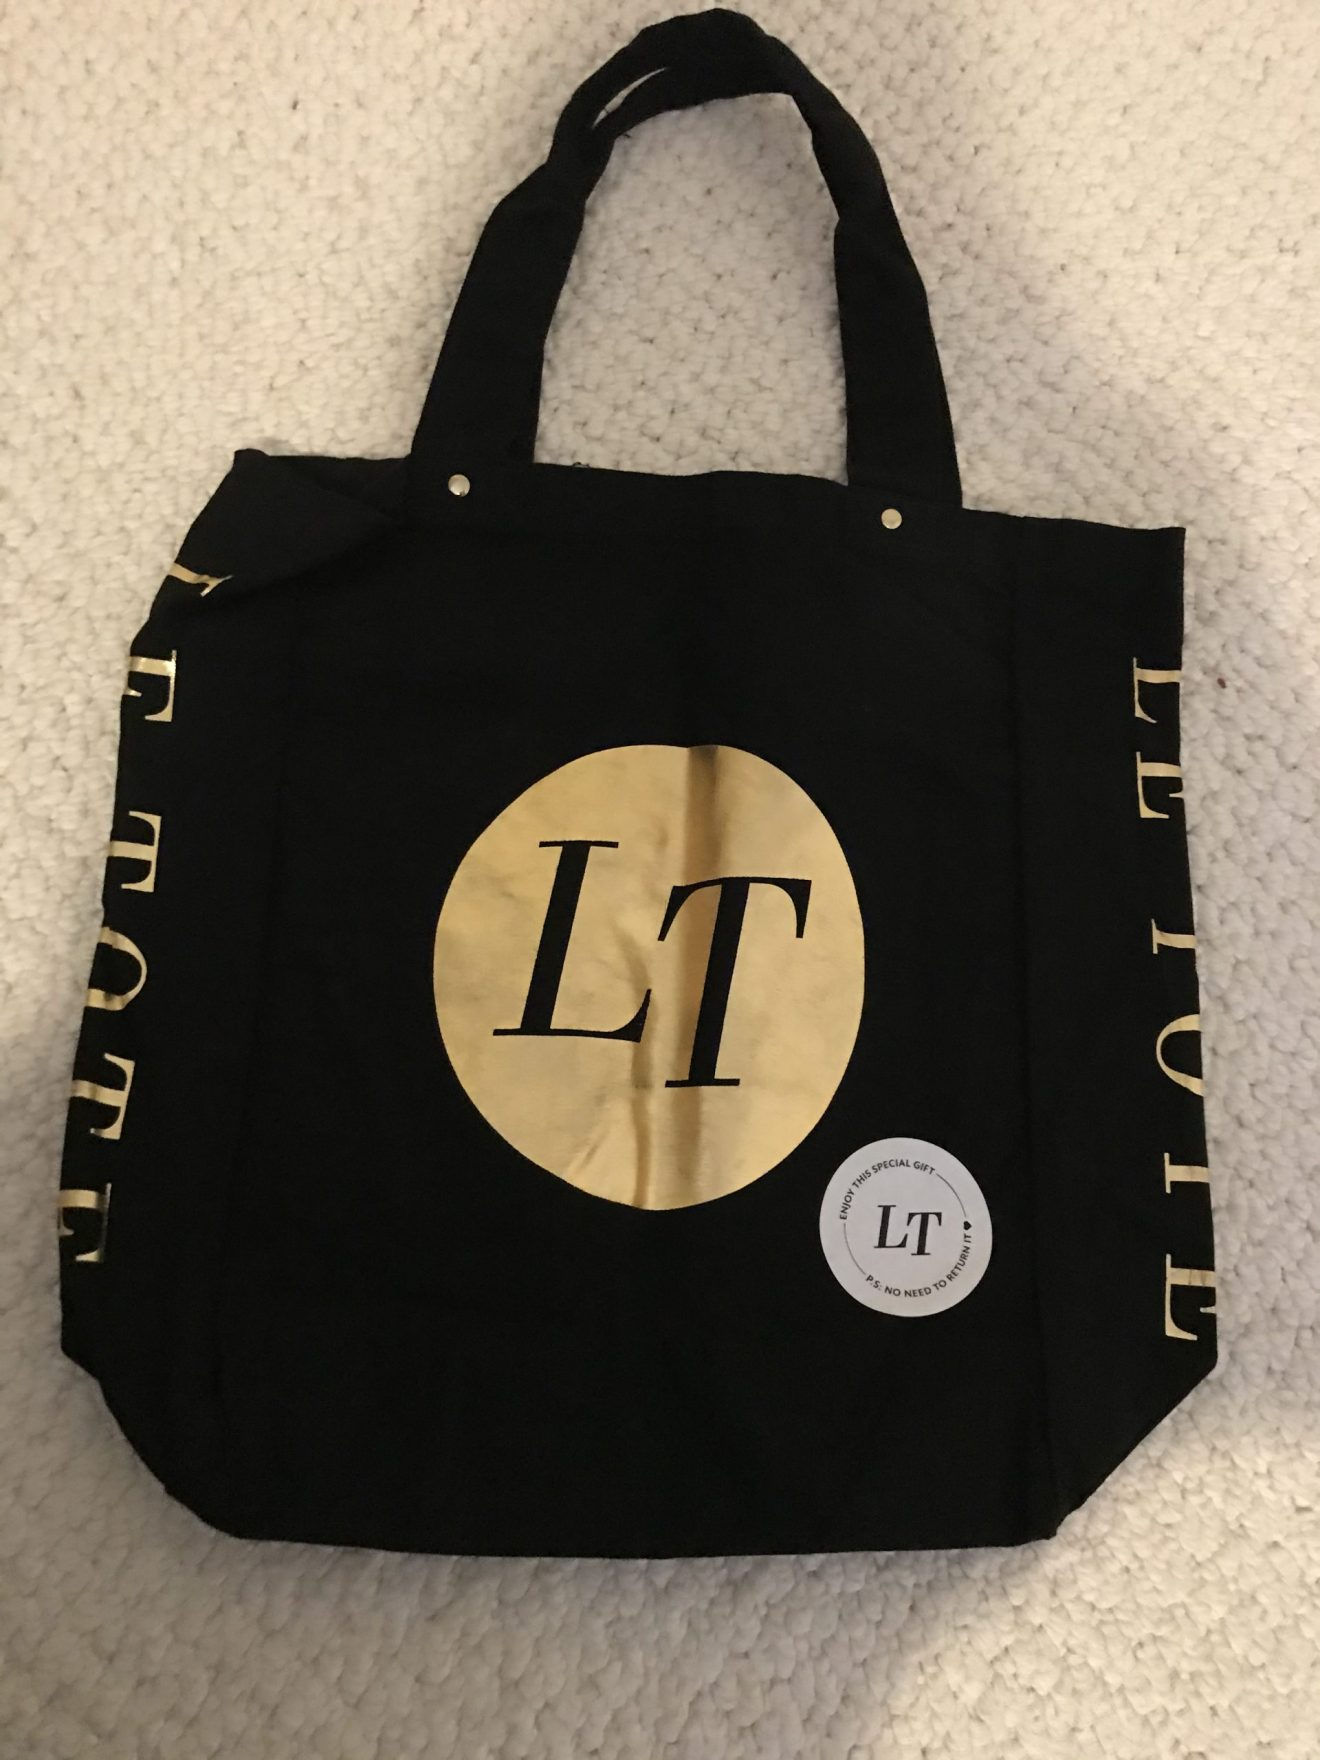 The free tote bag given to me by Le Tote